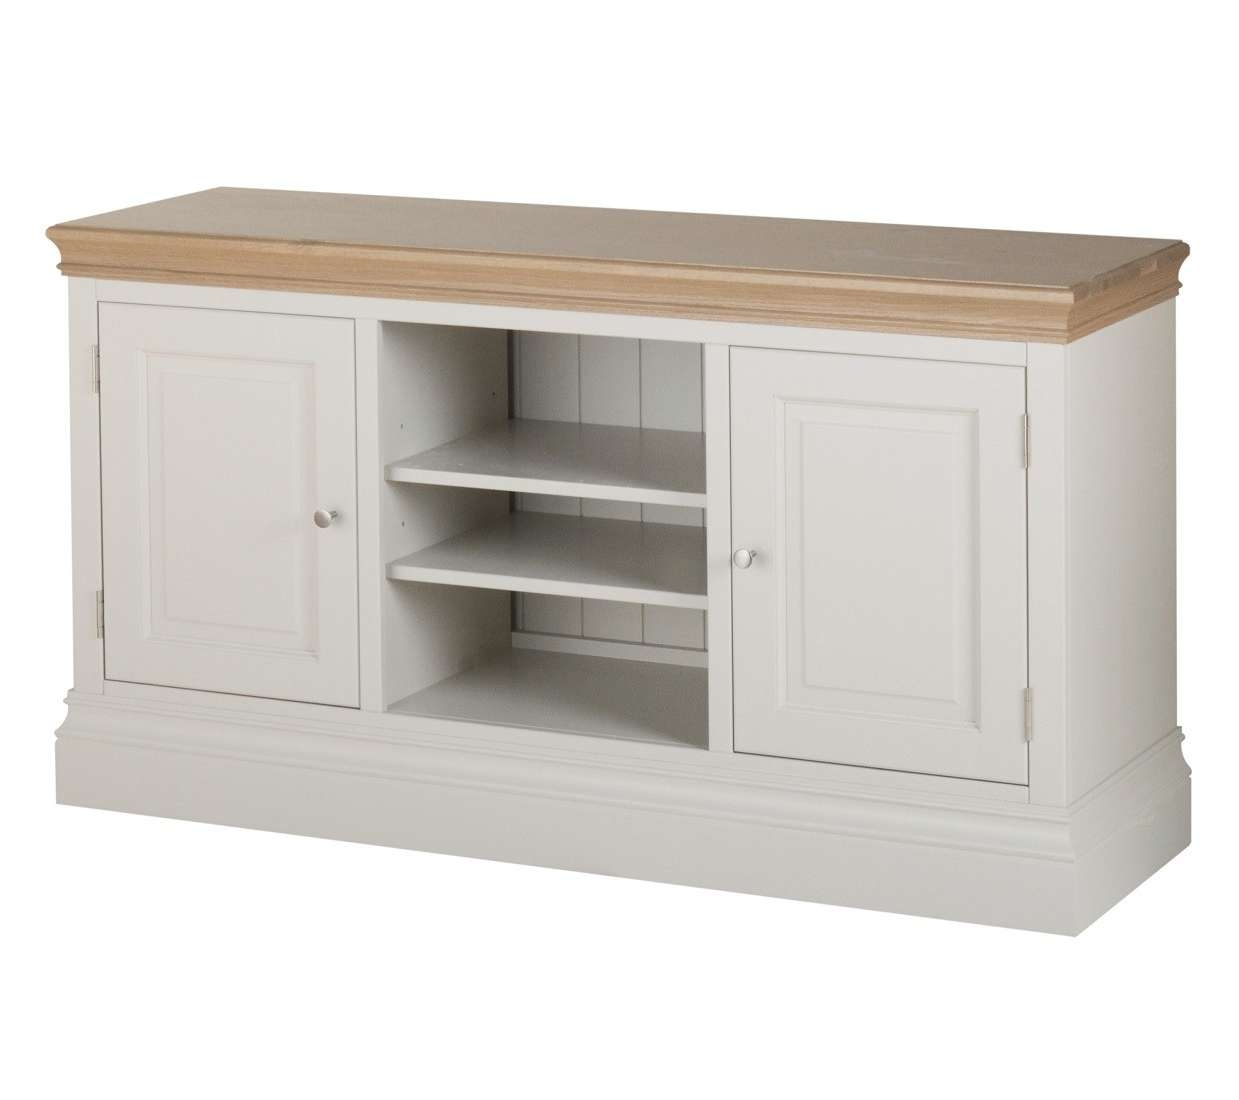 Country Oak And Painted Large Tv Cabinet | Oak Furniture Uk Inside Painted Tv Stands (View 8 of 15)